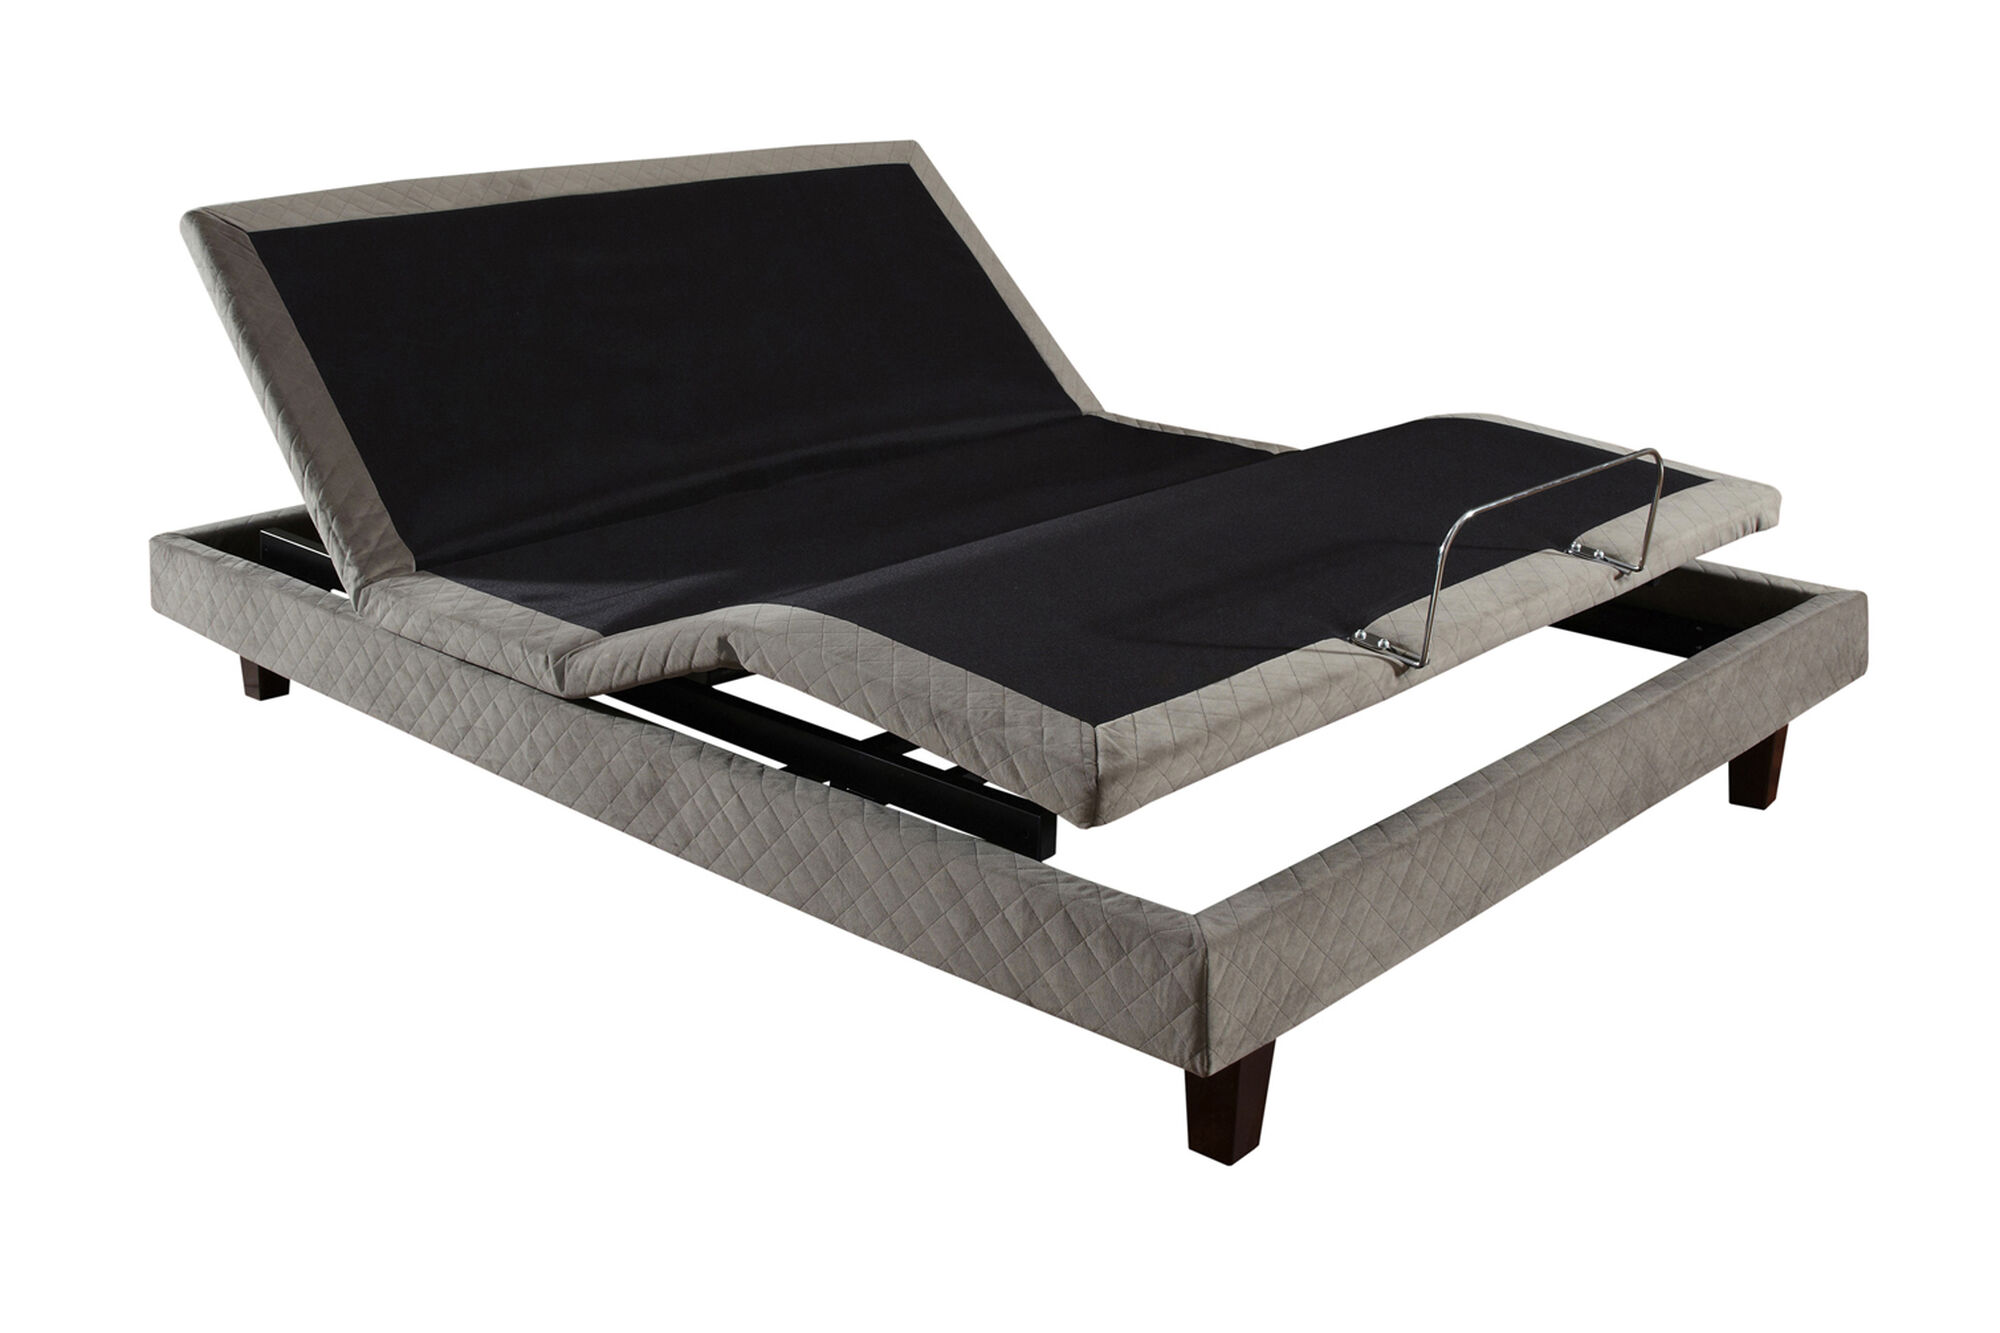 Sealy Reflexion 4 Adjustable Base | Mathis Brothers Furniture